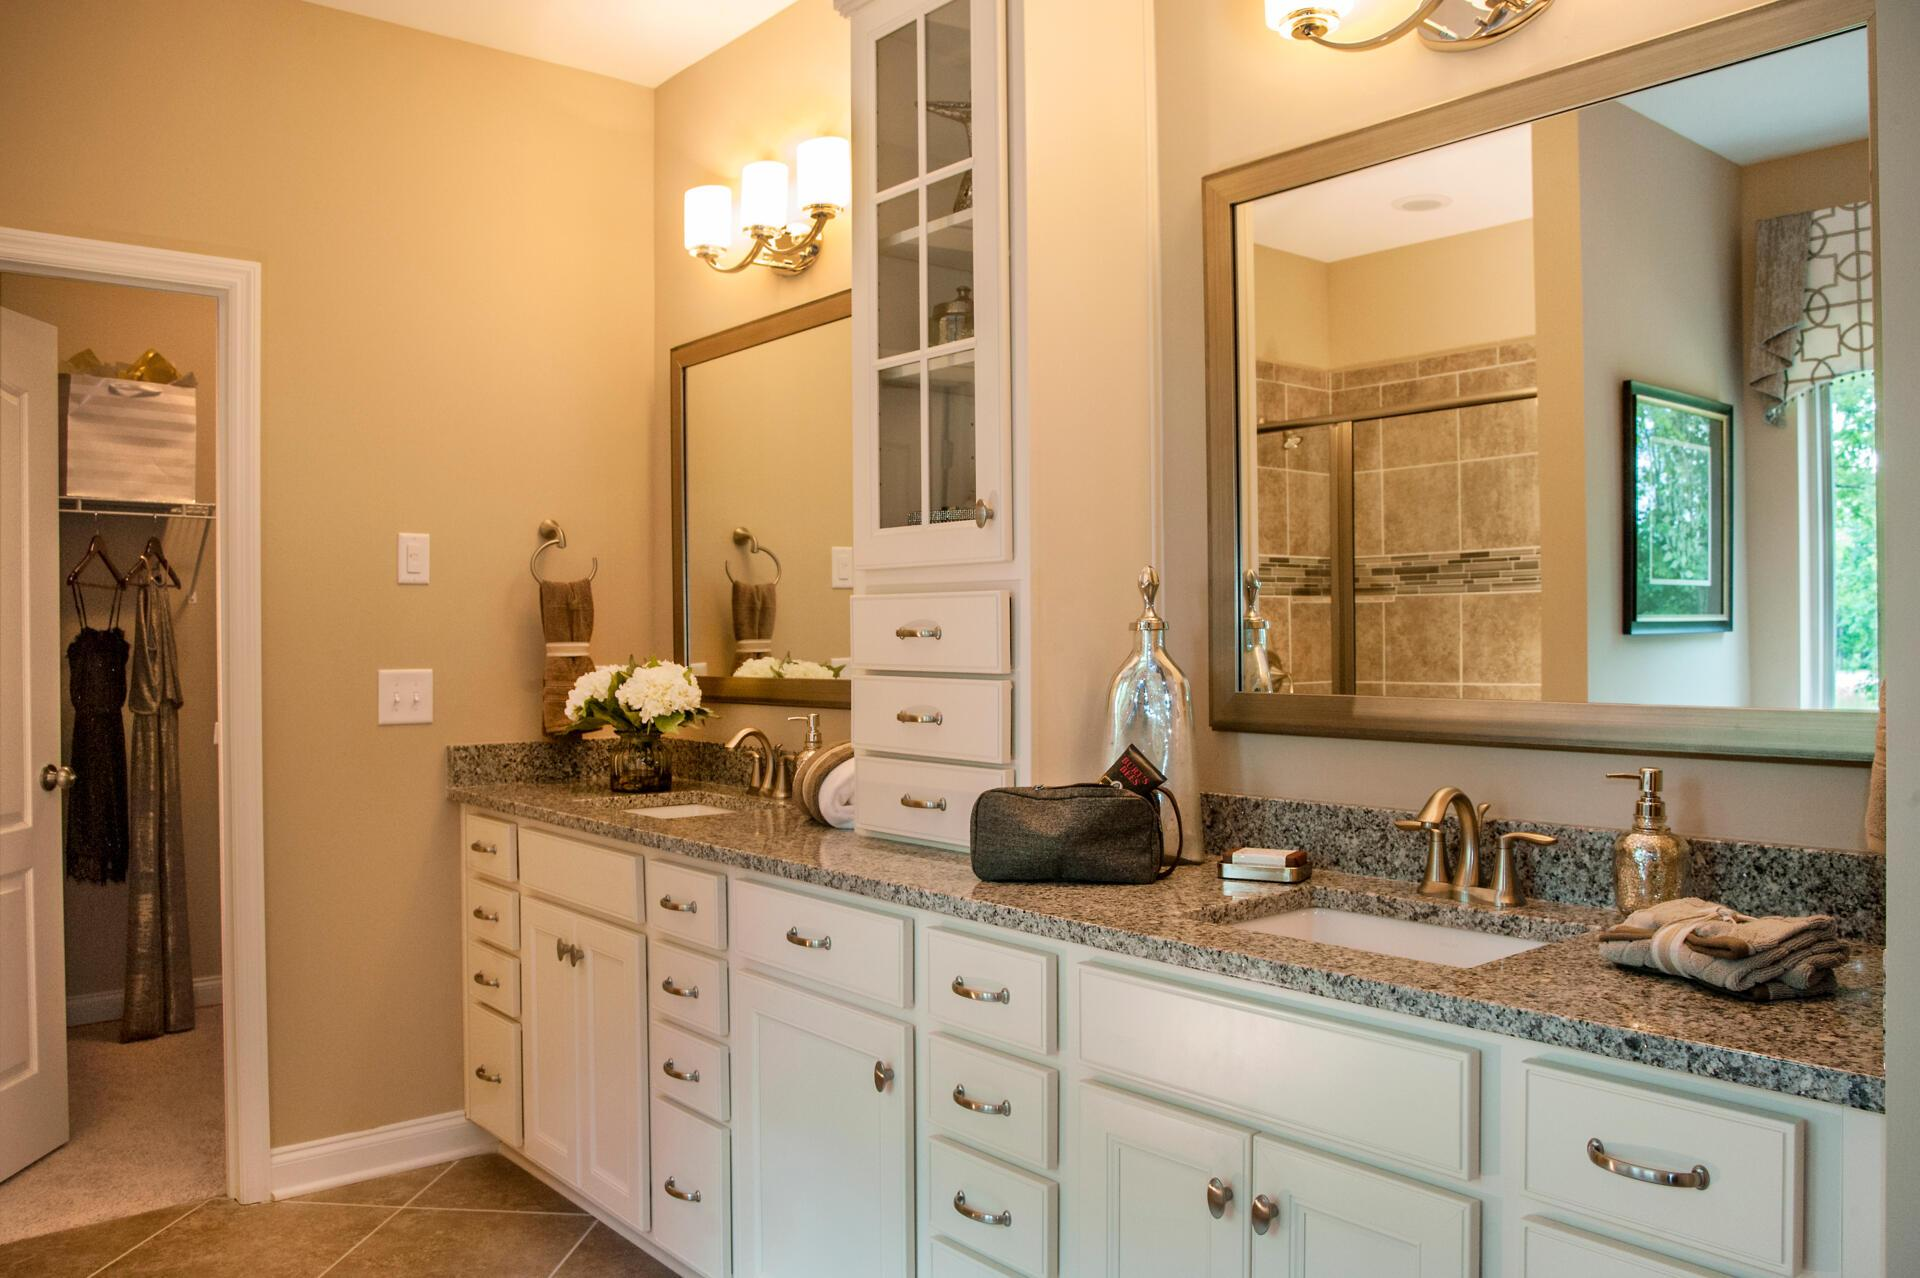 Bathroom featured in the Woodbury By Drees Homes in Nashville, TN